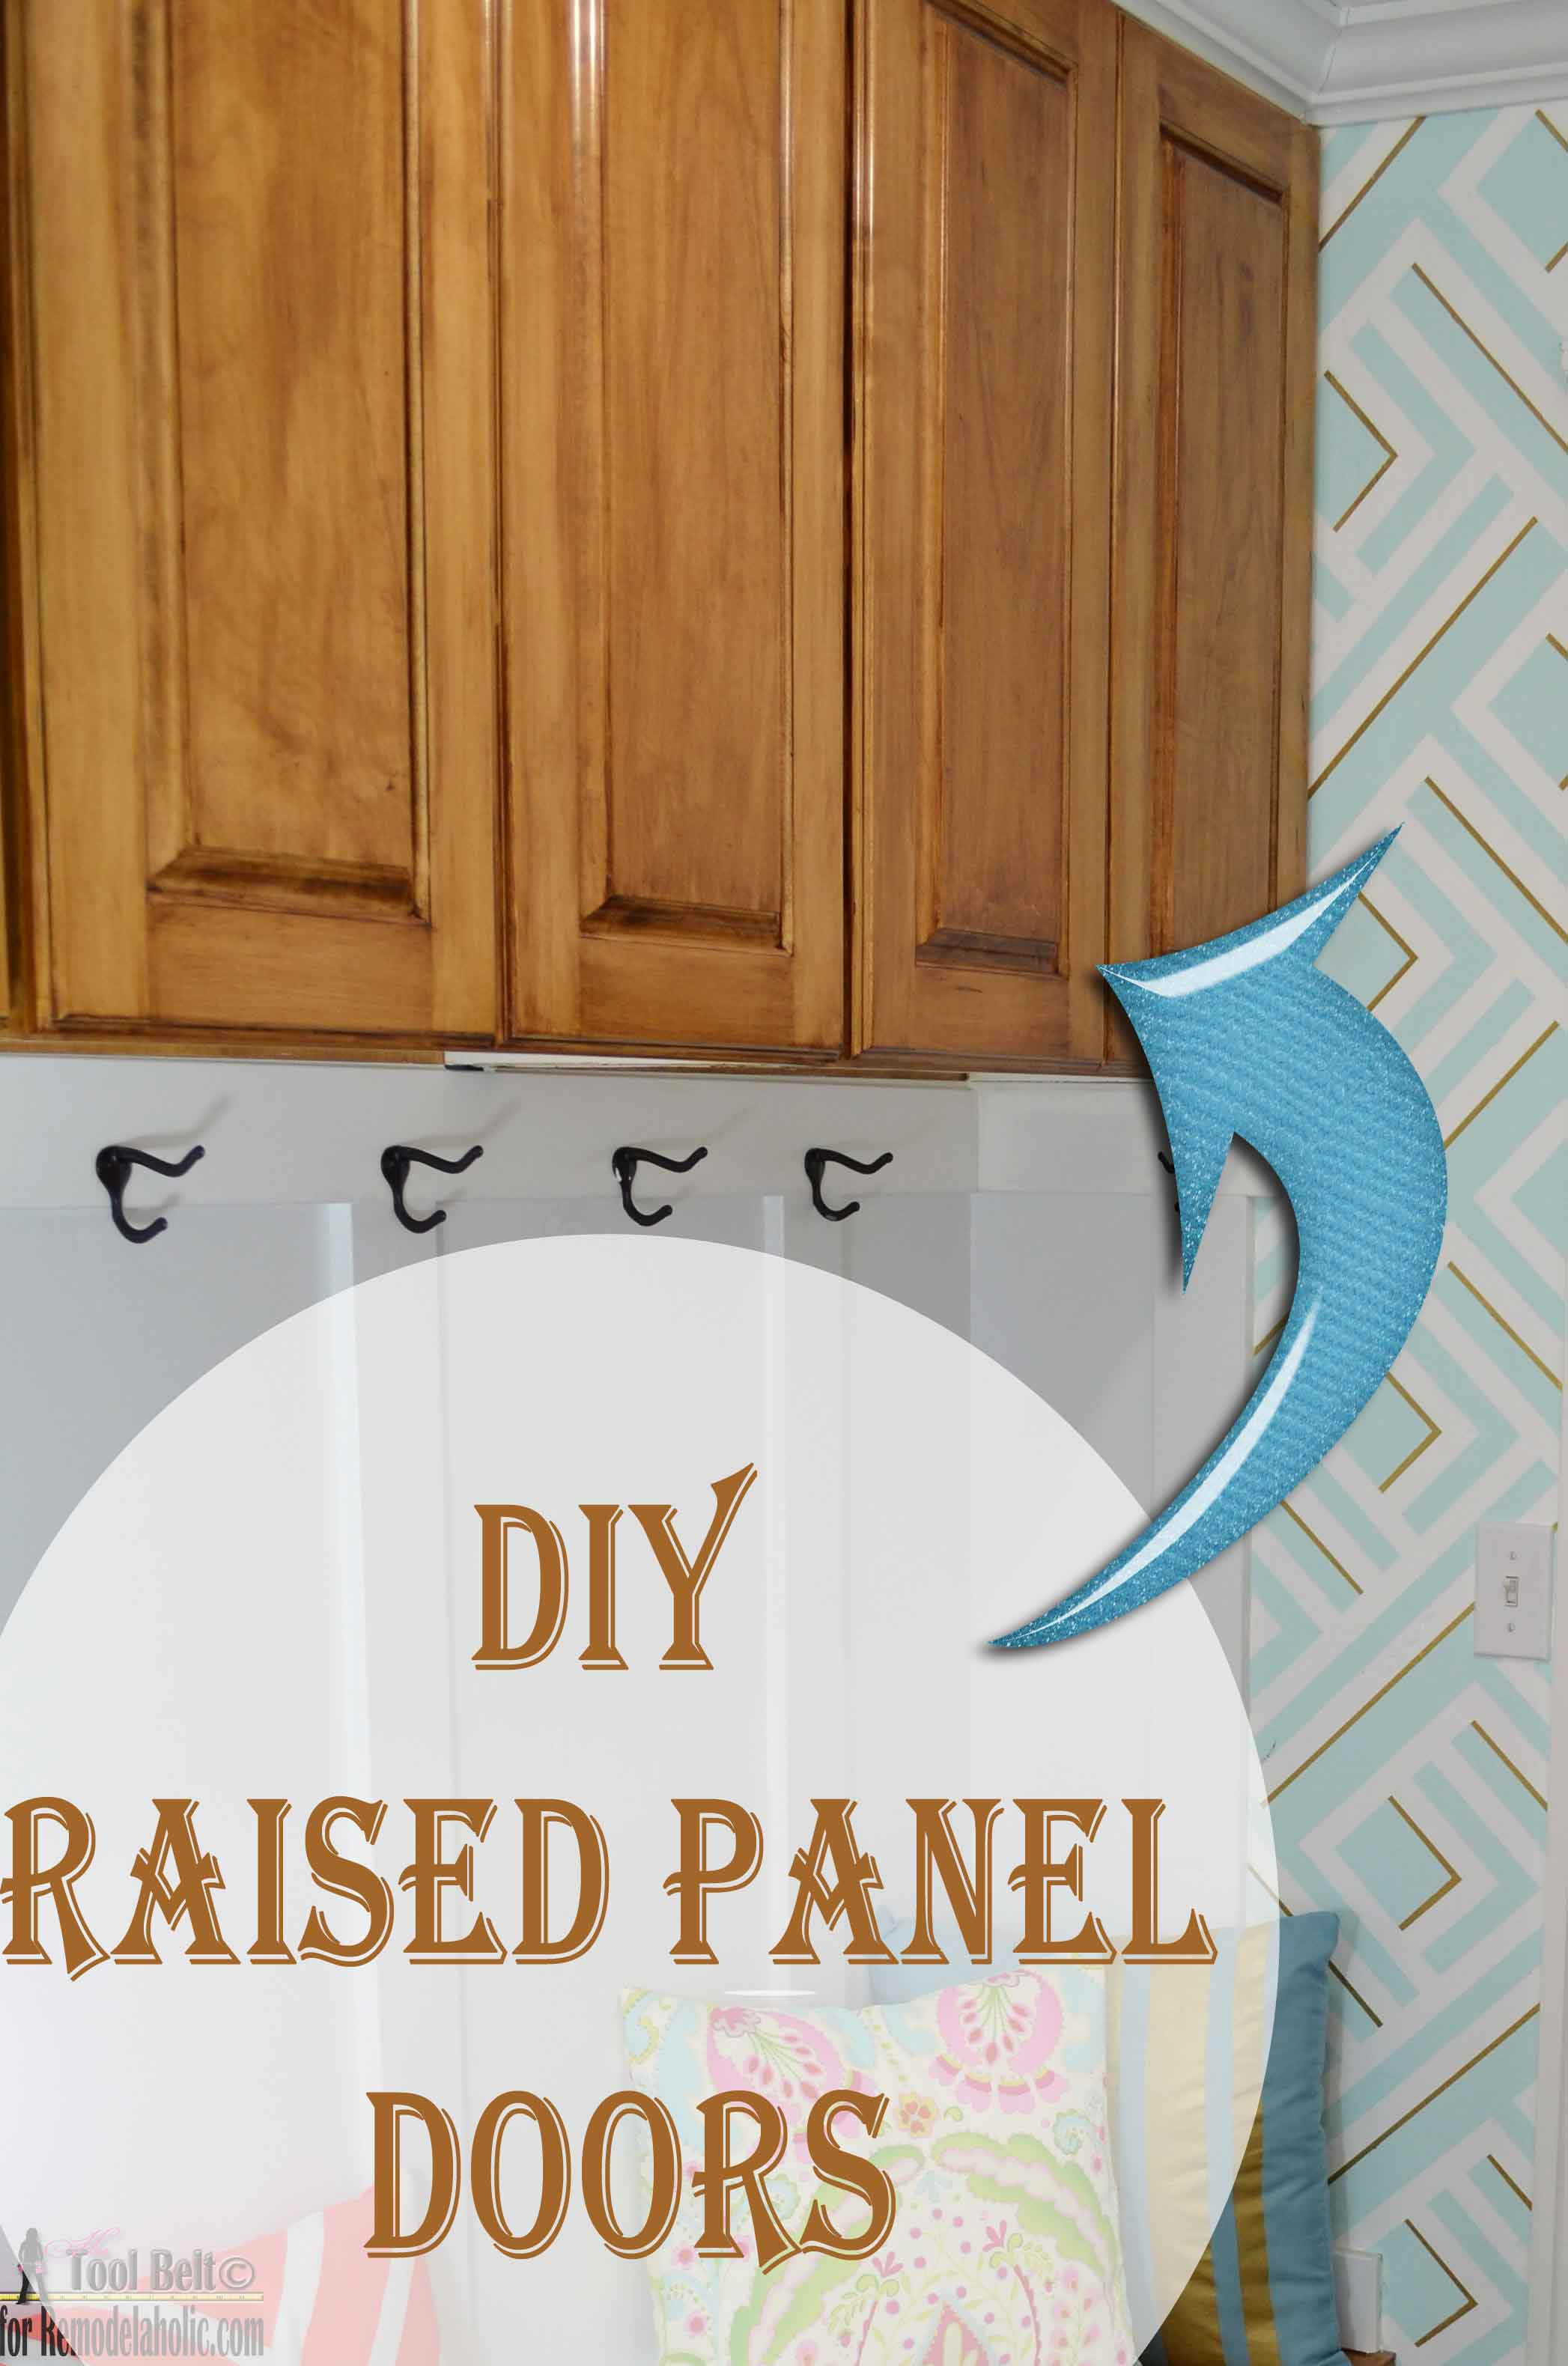 Build sliding cabinet doors - Build Your Own Custom Raised Panel Cabinet Doors For Your Home Or Projects Great Tutorial